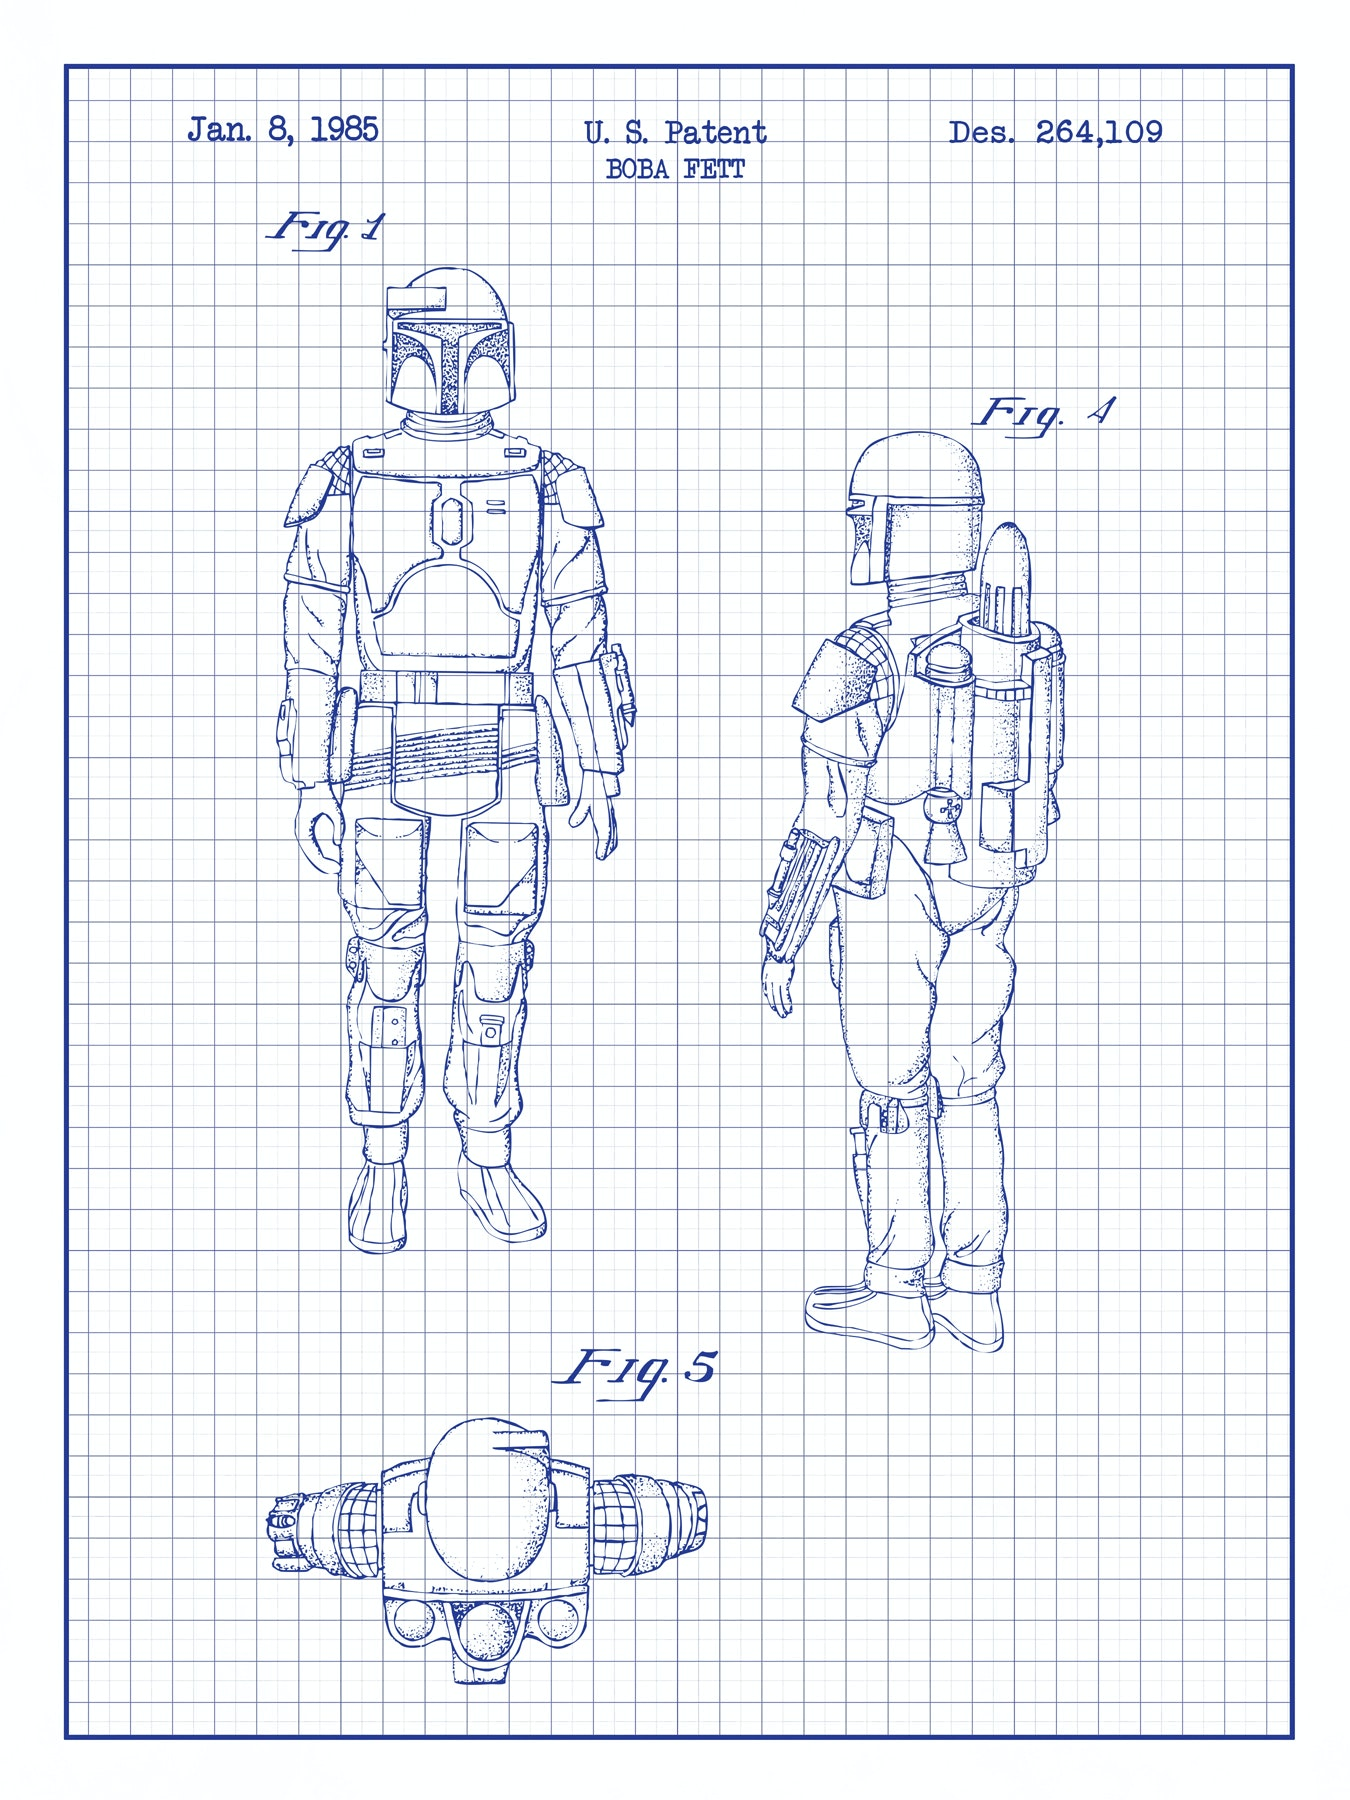 SP-SYFI-Boba-Fett-264,109-White-Grid-Blue-Ink-24-Inches